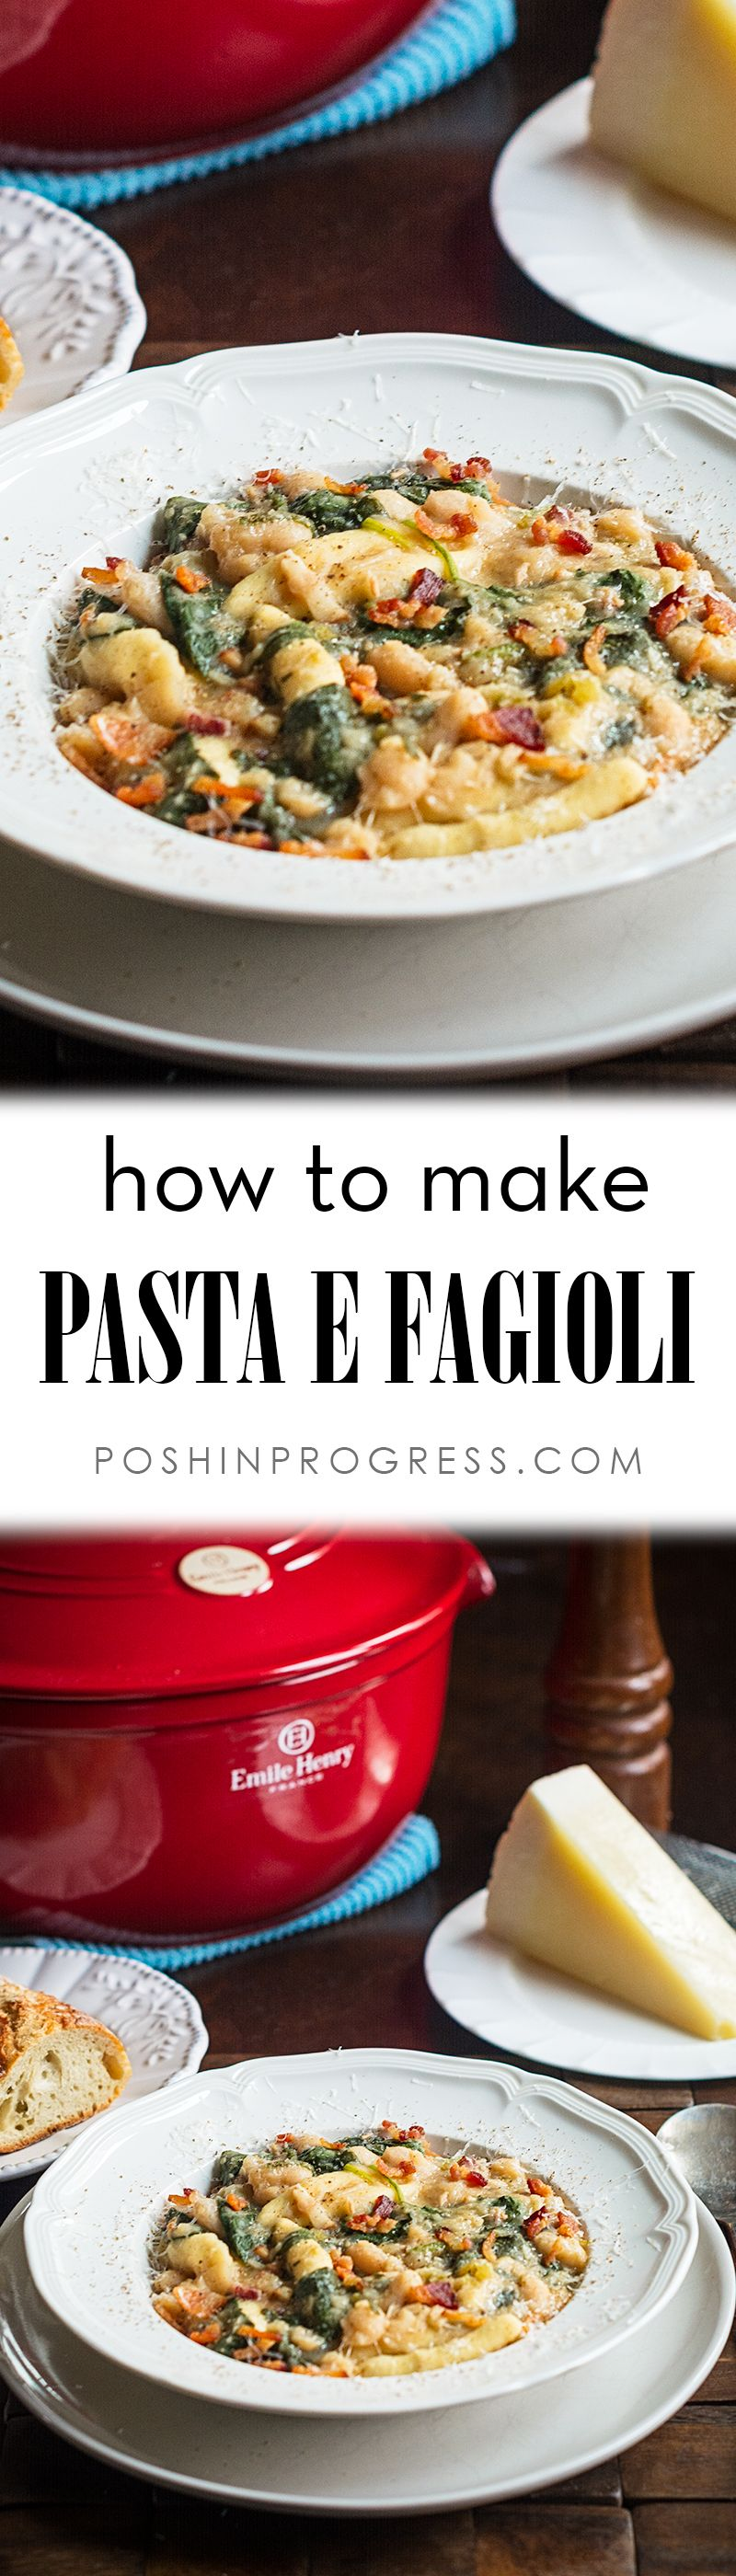 I'll show you how to make Pasta Fagioli (technically Pasta E Fagioli). It's a classic one-pot meal recipe, a hearty winter soup, and one of my dad's favorites. Leave the bacon out and it's a great vegetarian meal.